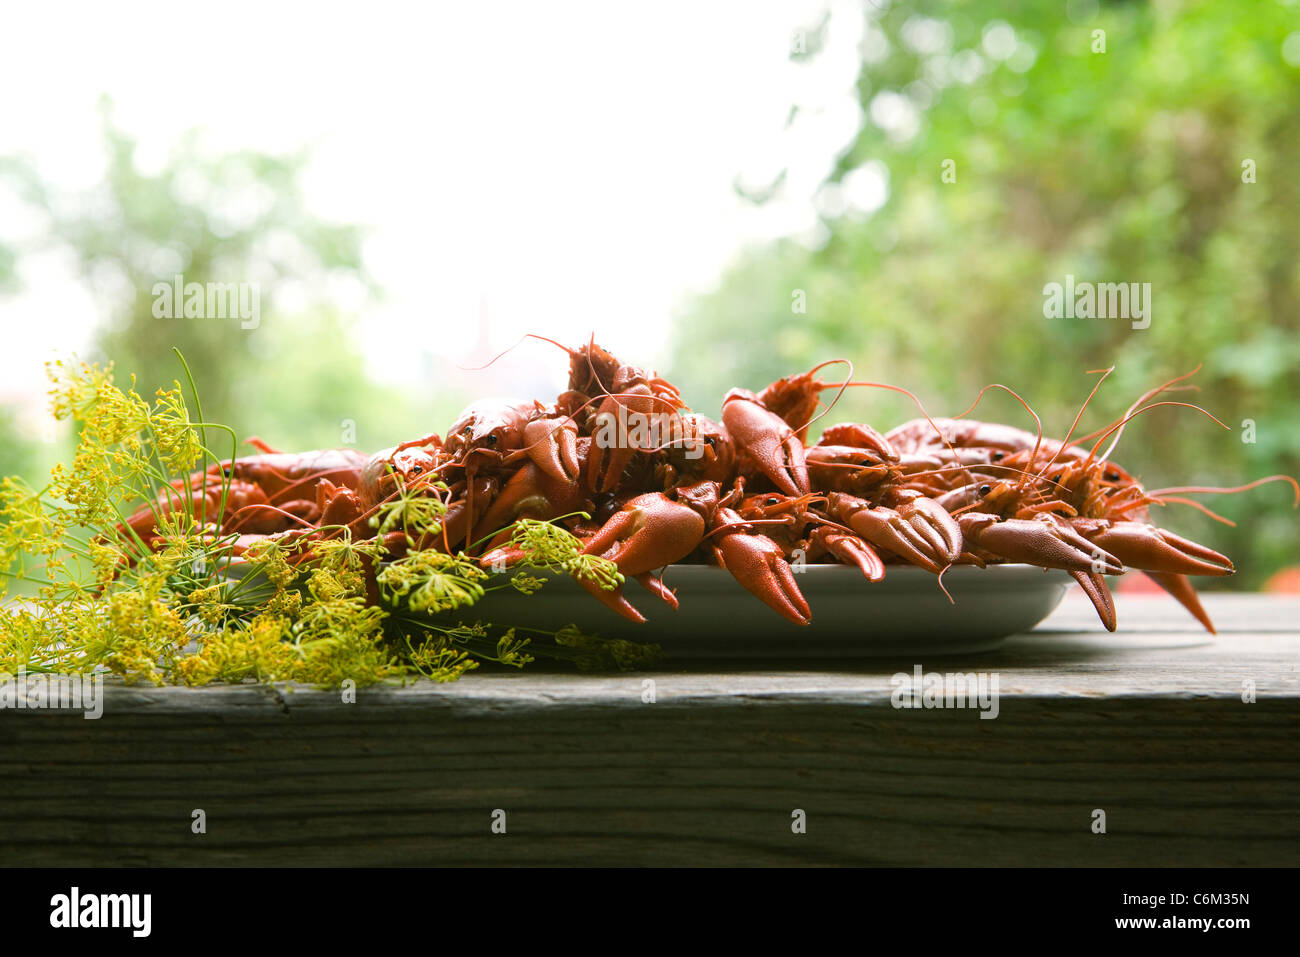 Boiled crawfish on outdoor table Stock Photo